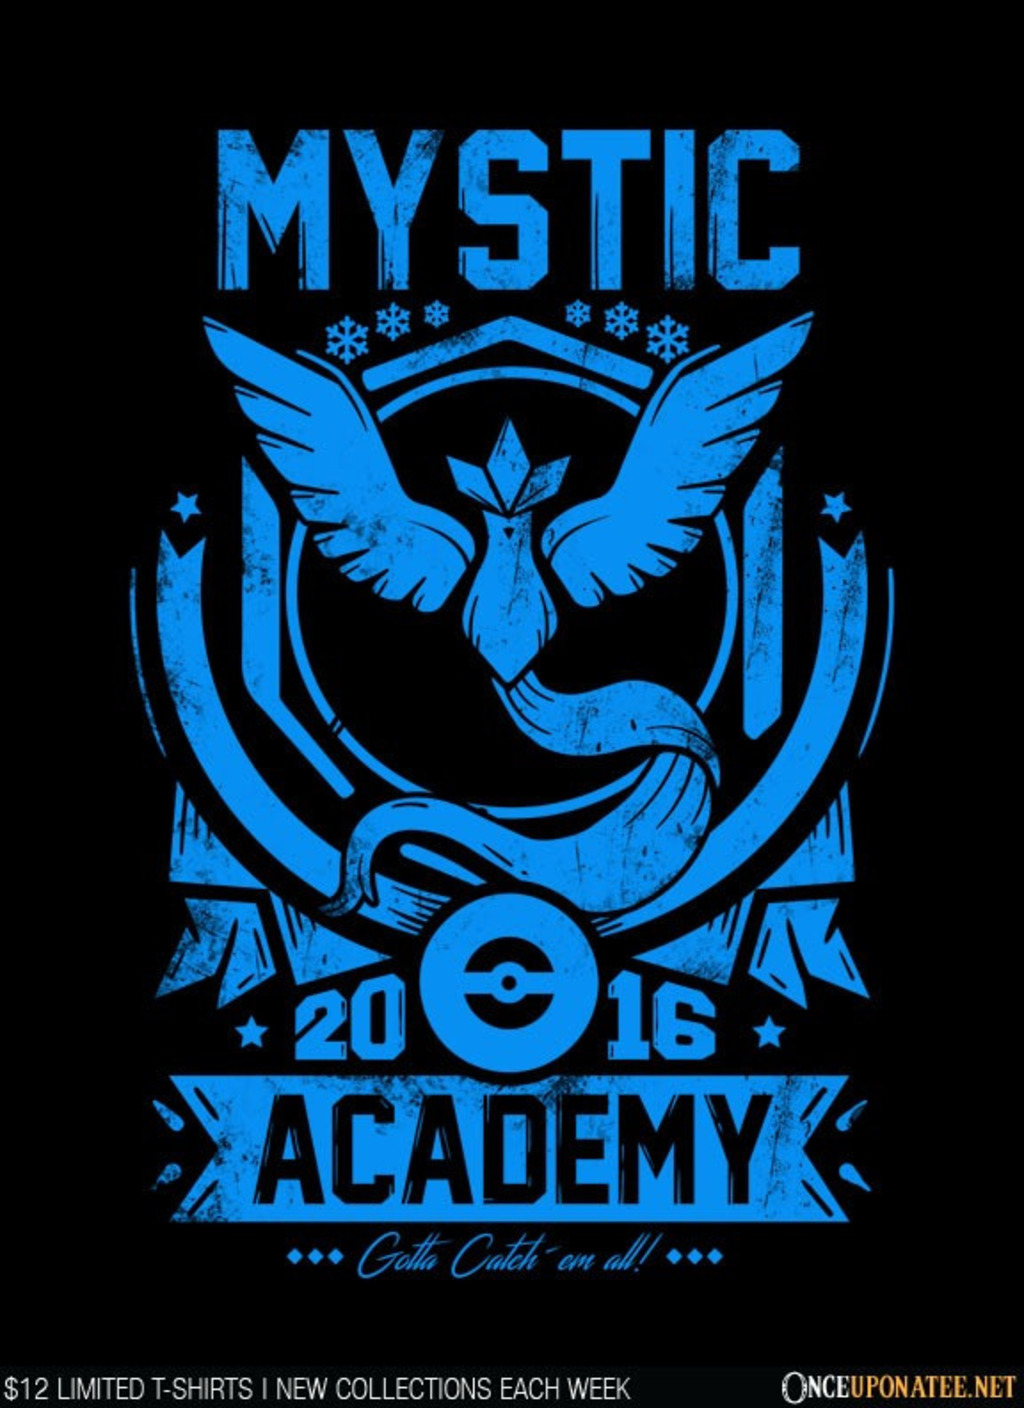 Once Upon a Tee: Mystic Academy